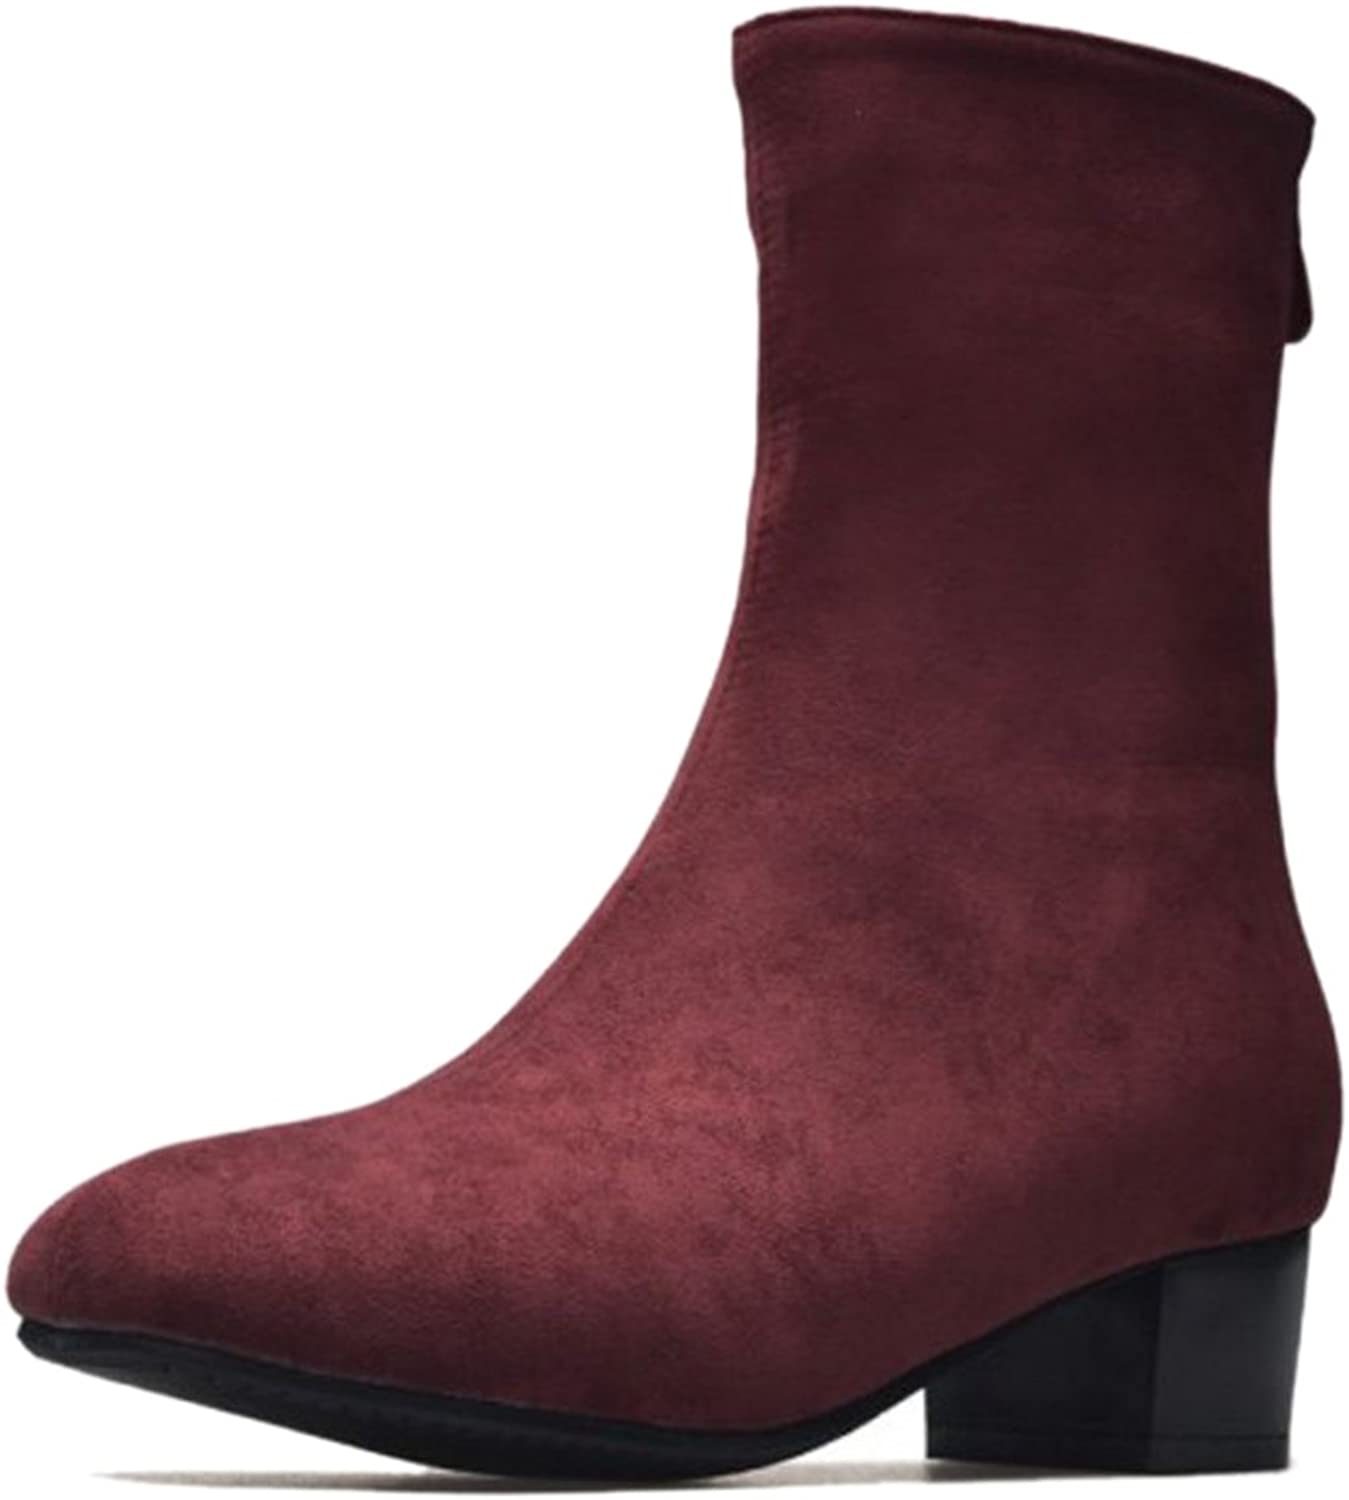 CUTEHEELS Women Ankle Boots with Low Chunky Heel and Round Toe